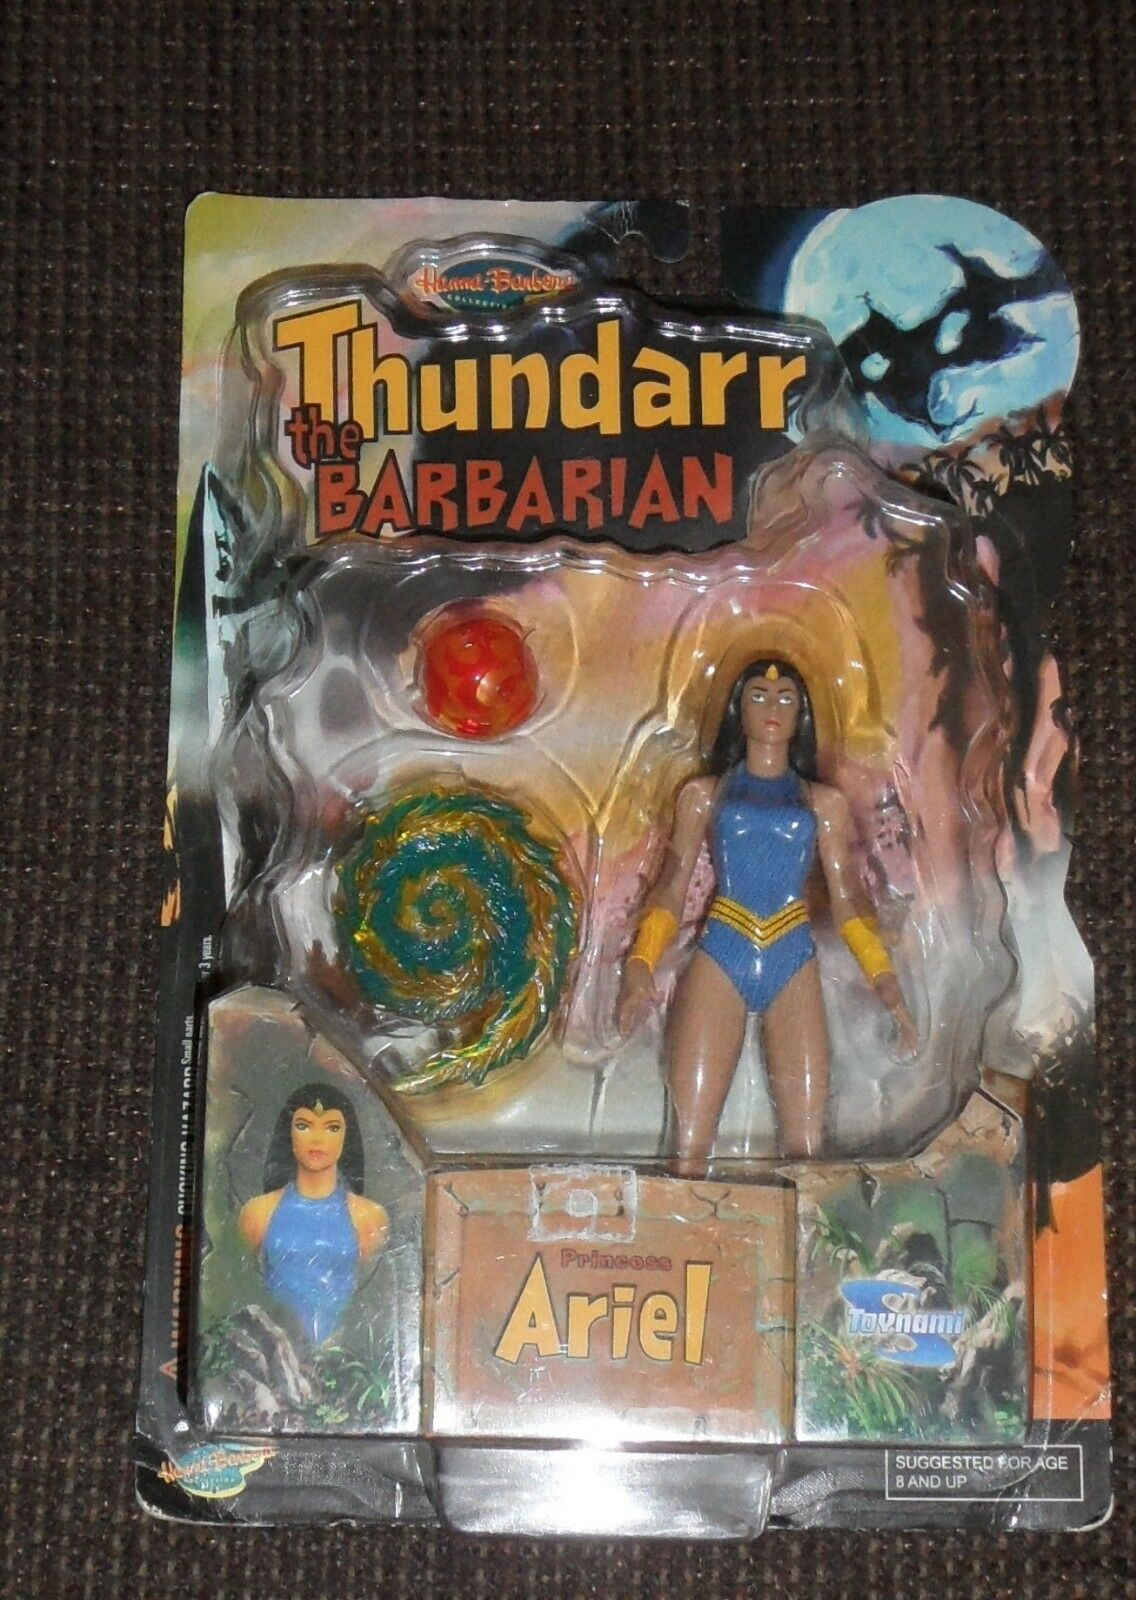 Thundarr the Barbarian Princess Ariel 2003 Toynami Action Figure